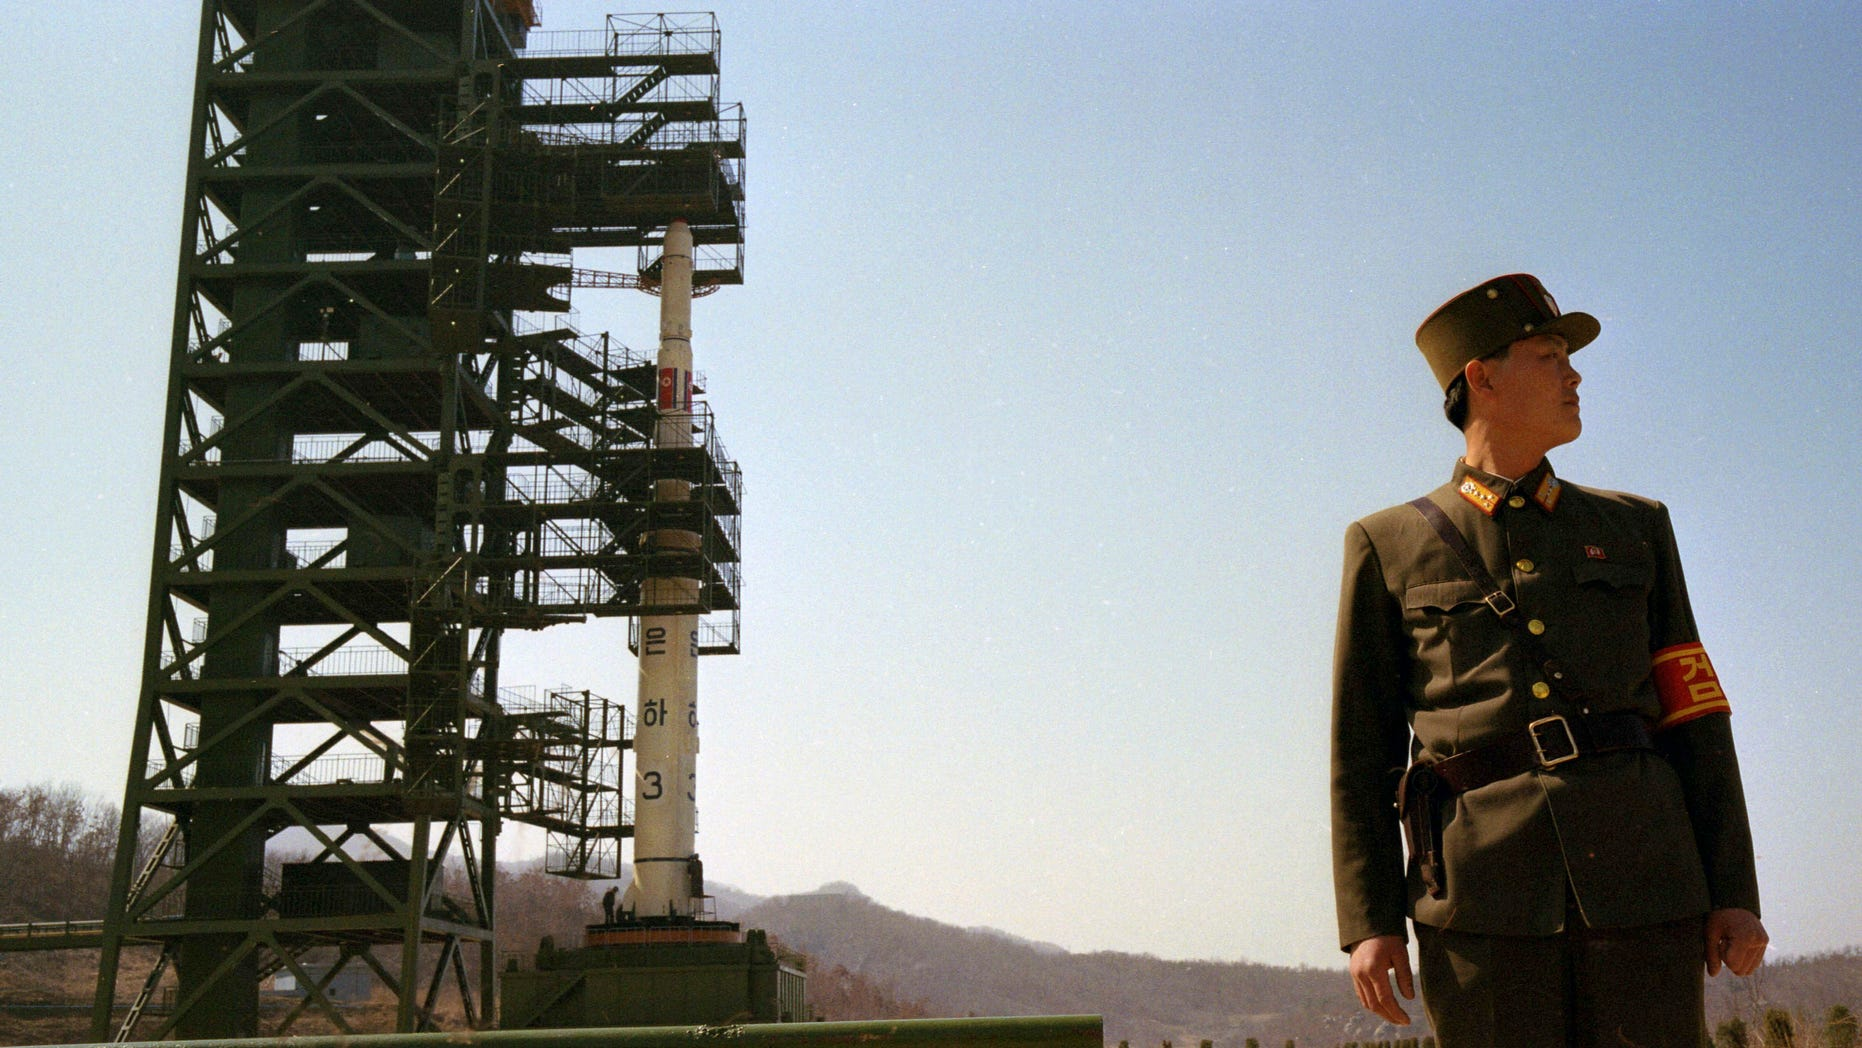 In this April 8, 2012 photo, North Korean soldiers stand guard in front of the country's Unha-3 rocket at Sohae Satellite Station in Tongchang-ri, North Korea. The Kwangmyongsong-3 satellite was launched on April 13, 2012 but failed to reach orbit. (AP Photo/David Guttenfelder)